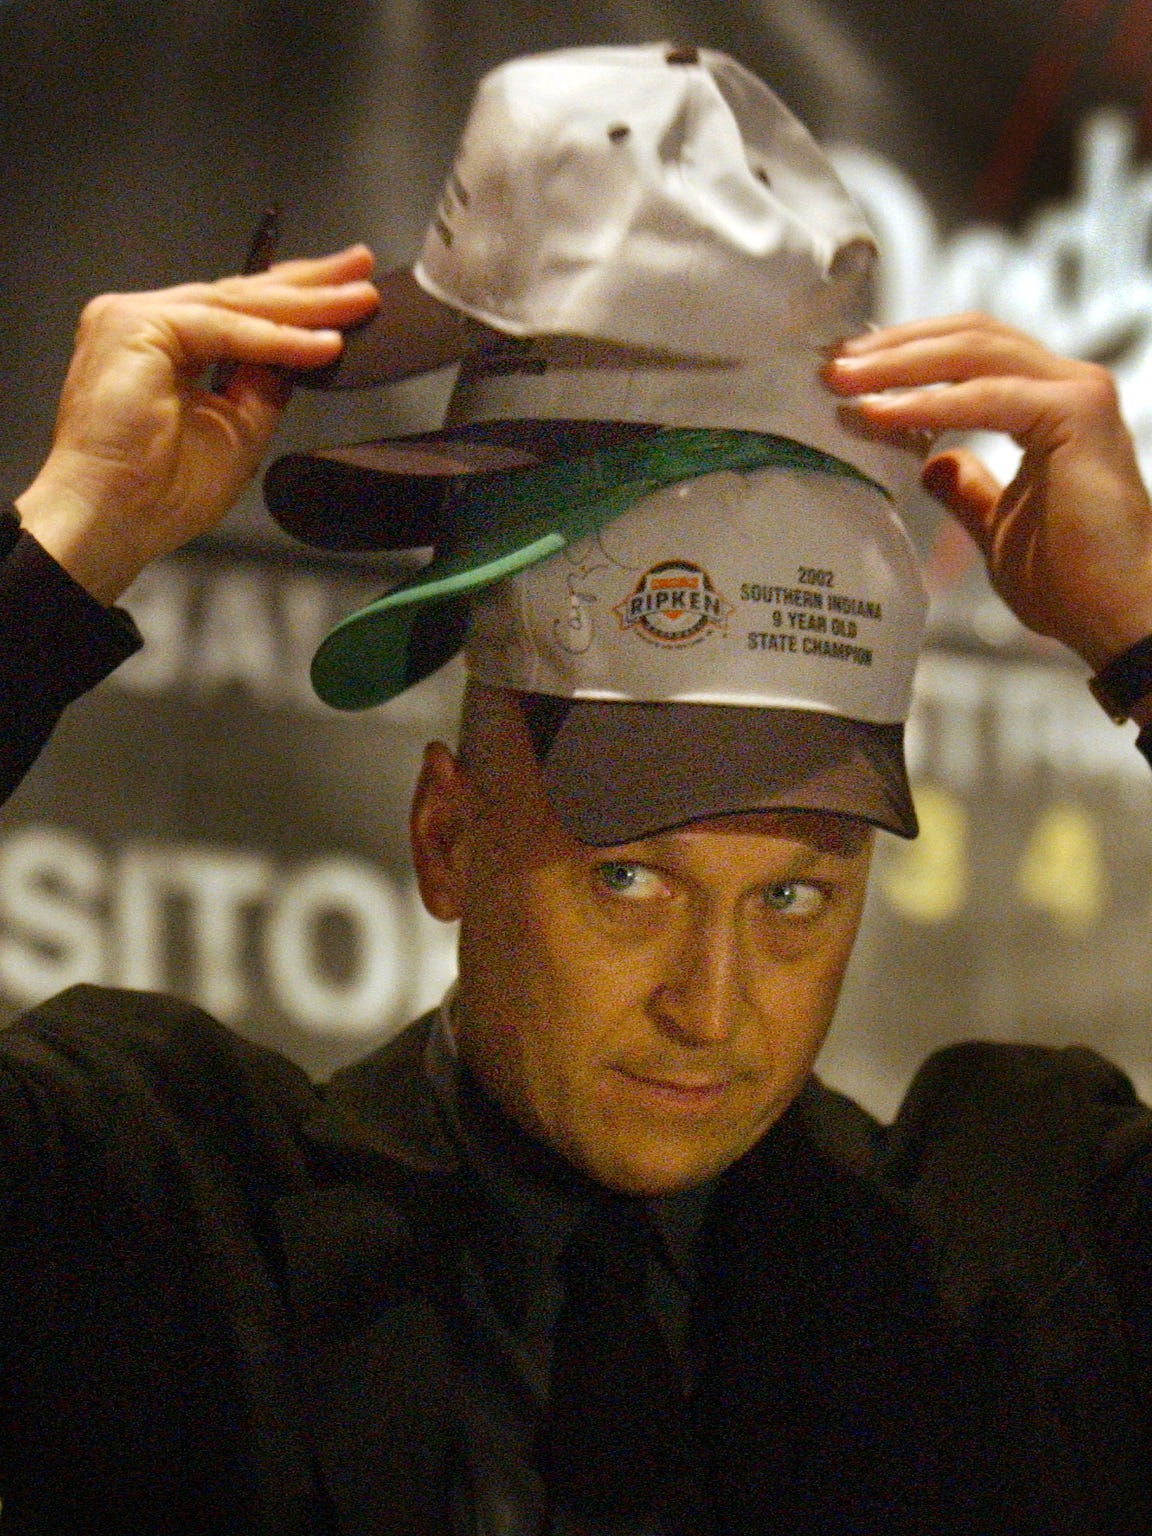 Cal Ripken Jr., places hats on his head as he prepares to autograph them for kids after a large press conference announcing a Class A baseball team in Evansville in 2003.